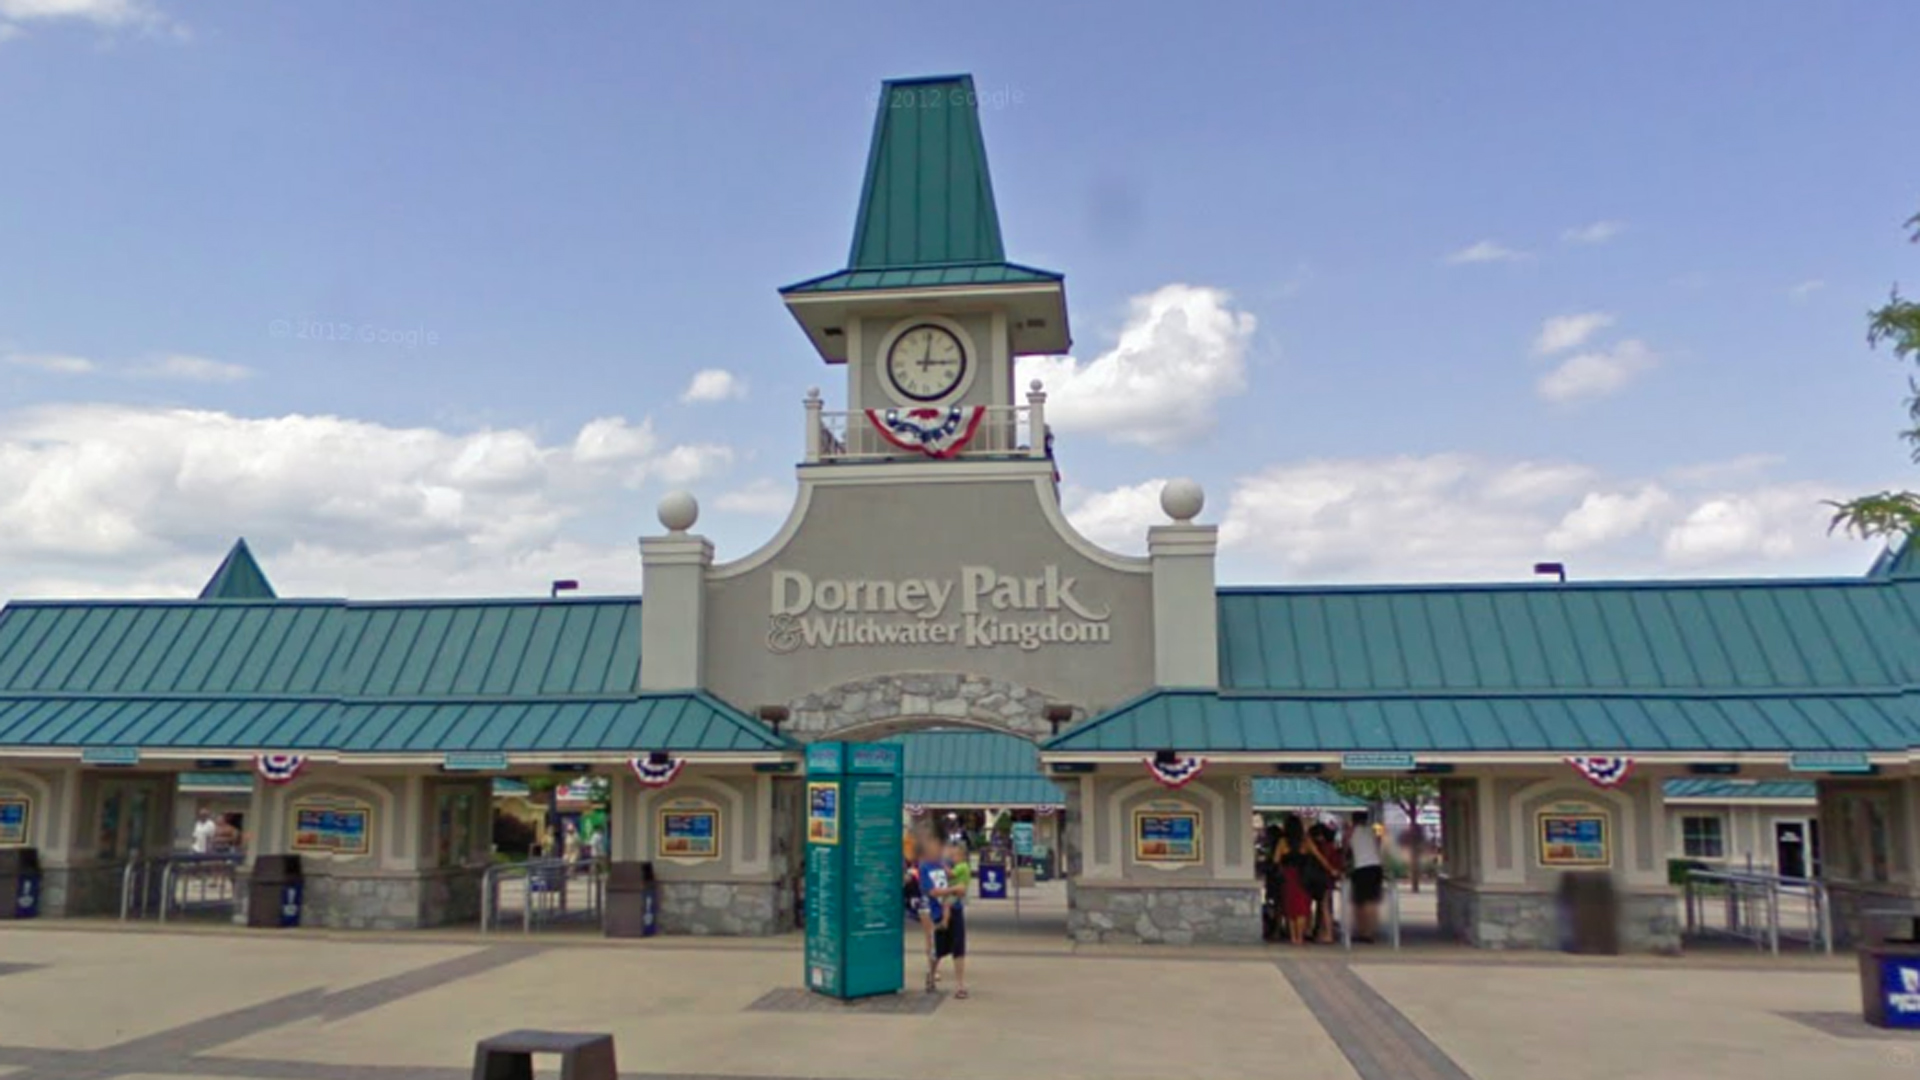 The entrance of Dorney Park and Wildwater Kingdom is seen in a Google Maps image.